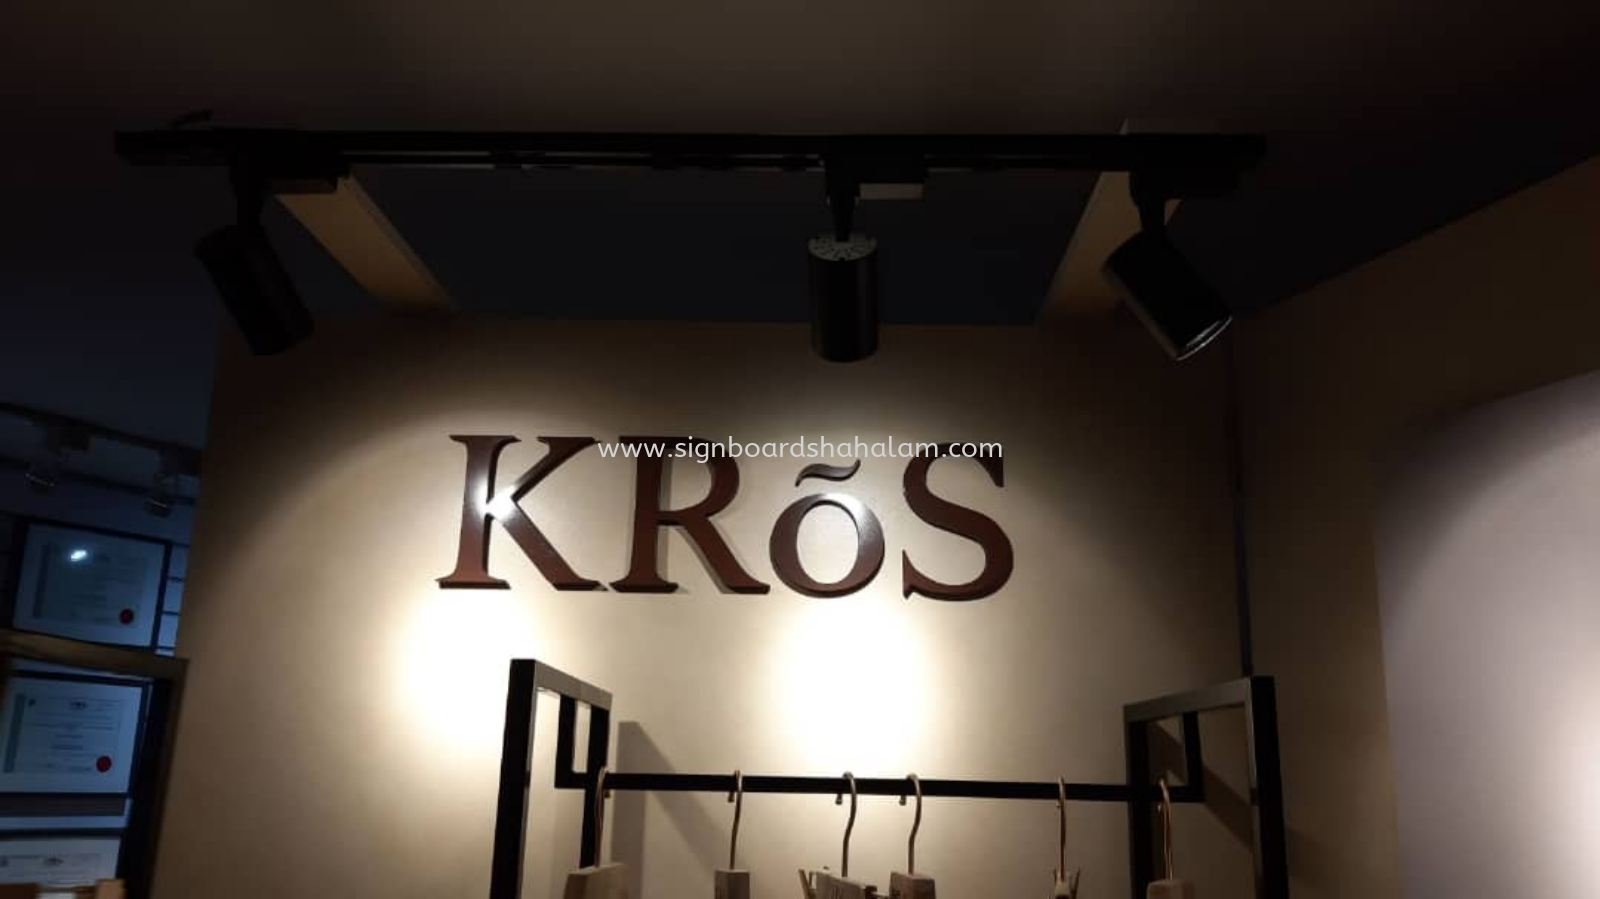 KROS KL - Indoor 3d Signage With Non LED